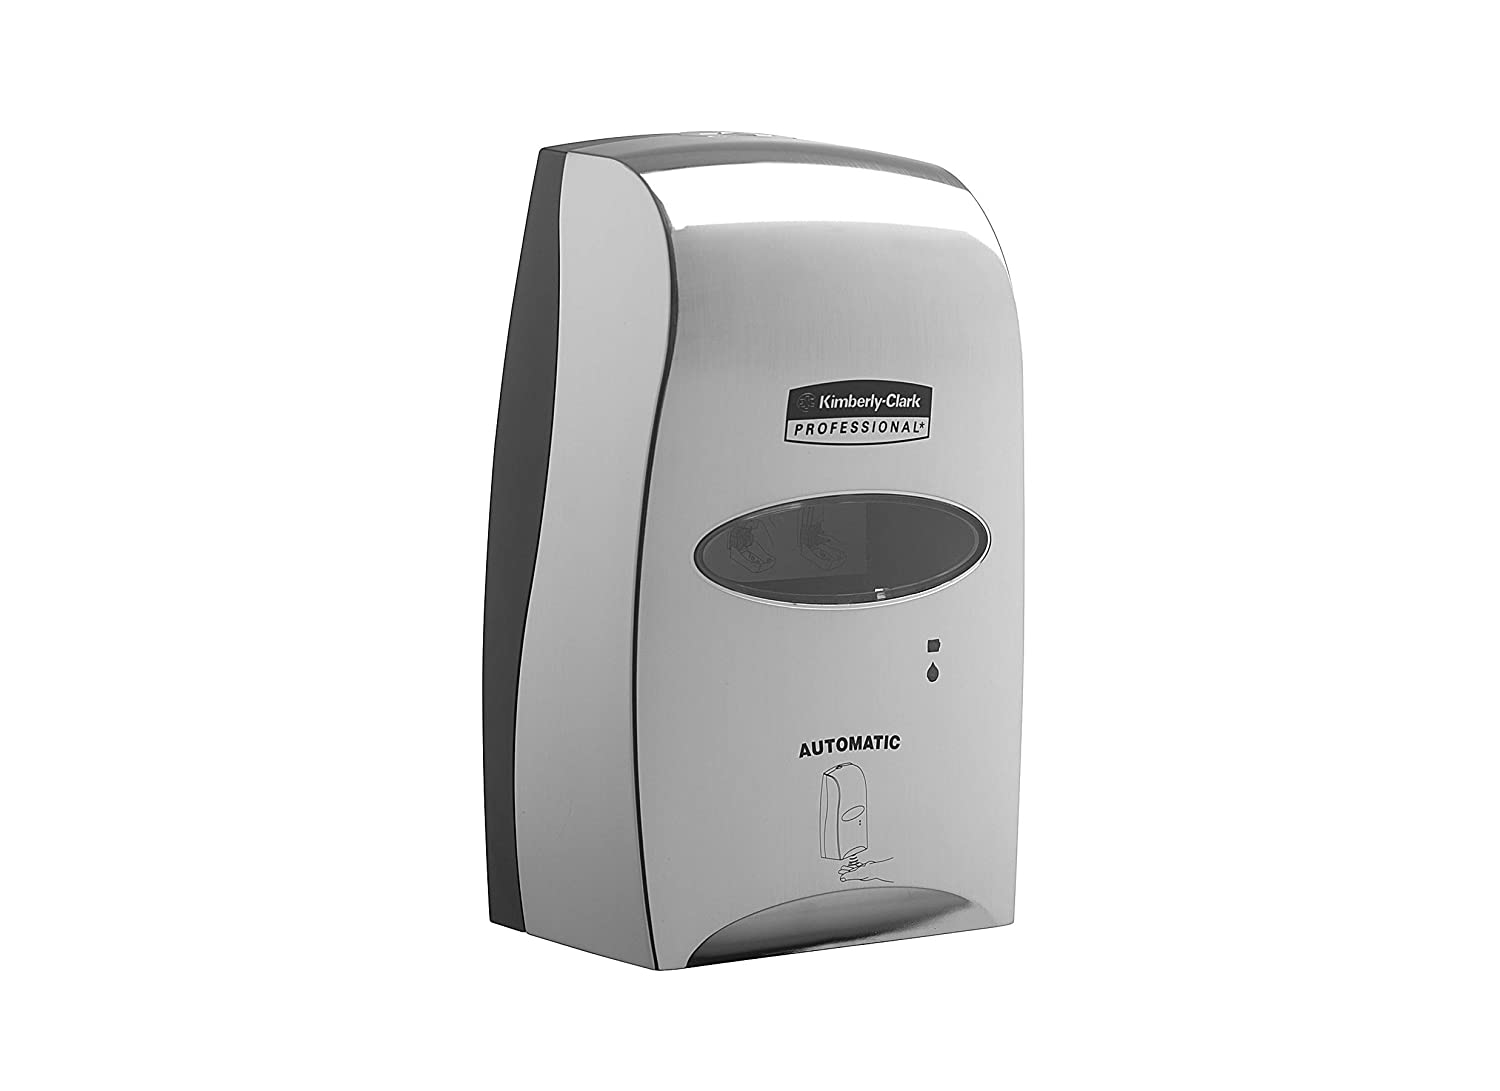 Brushed Metallic 1 x 1 Dispenser Kimberly-Clark Professional 11329 Touch-less Electronic Skin Care Dispenser 1.2 Ltr